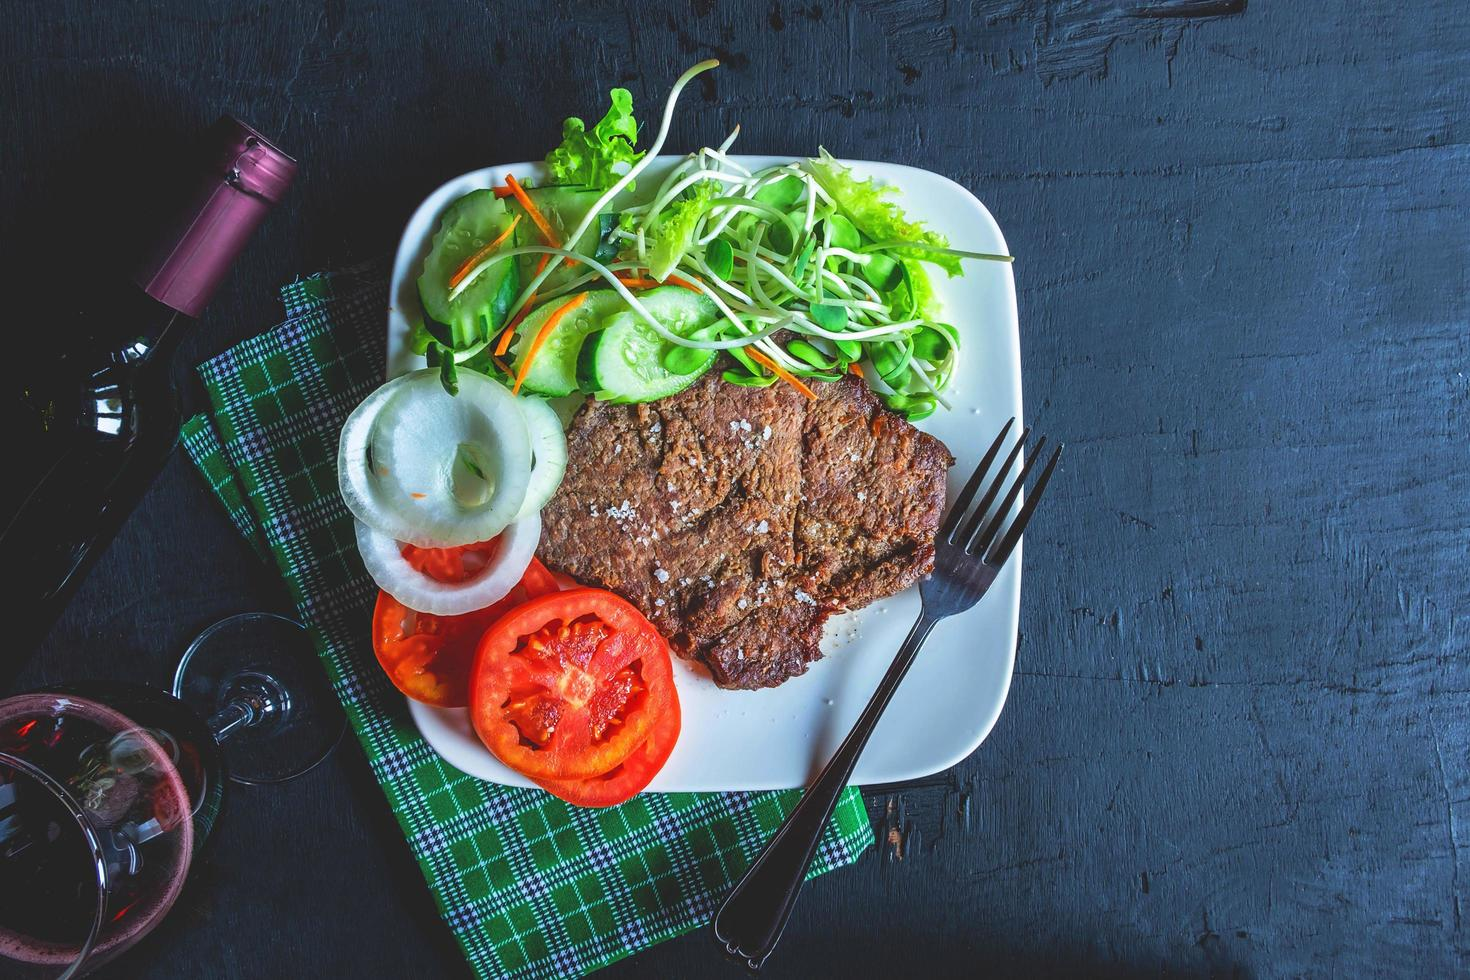 Steak and salad on a plate photo